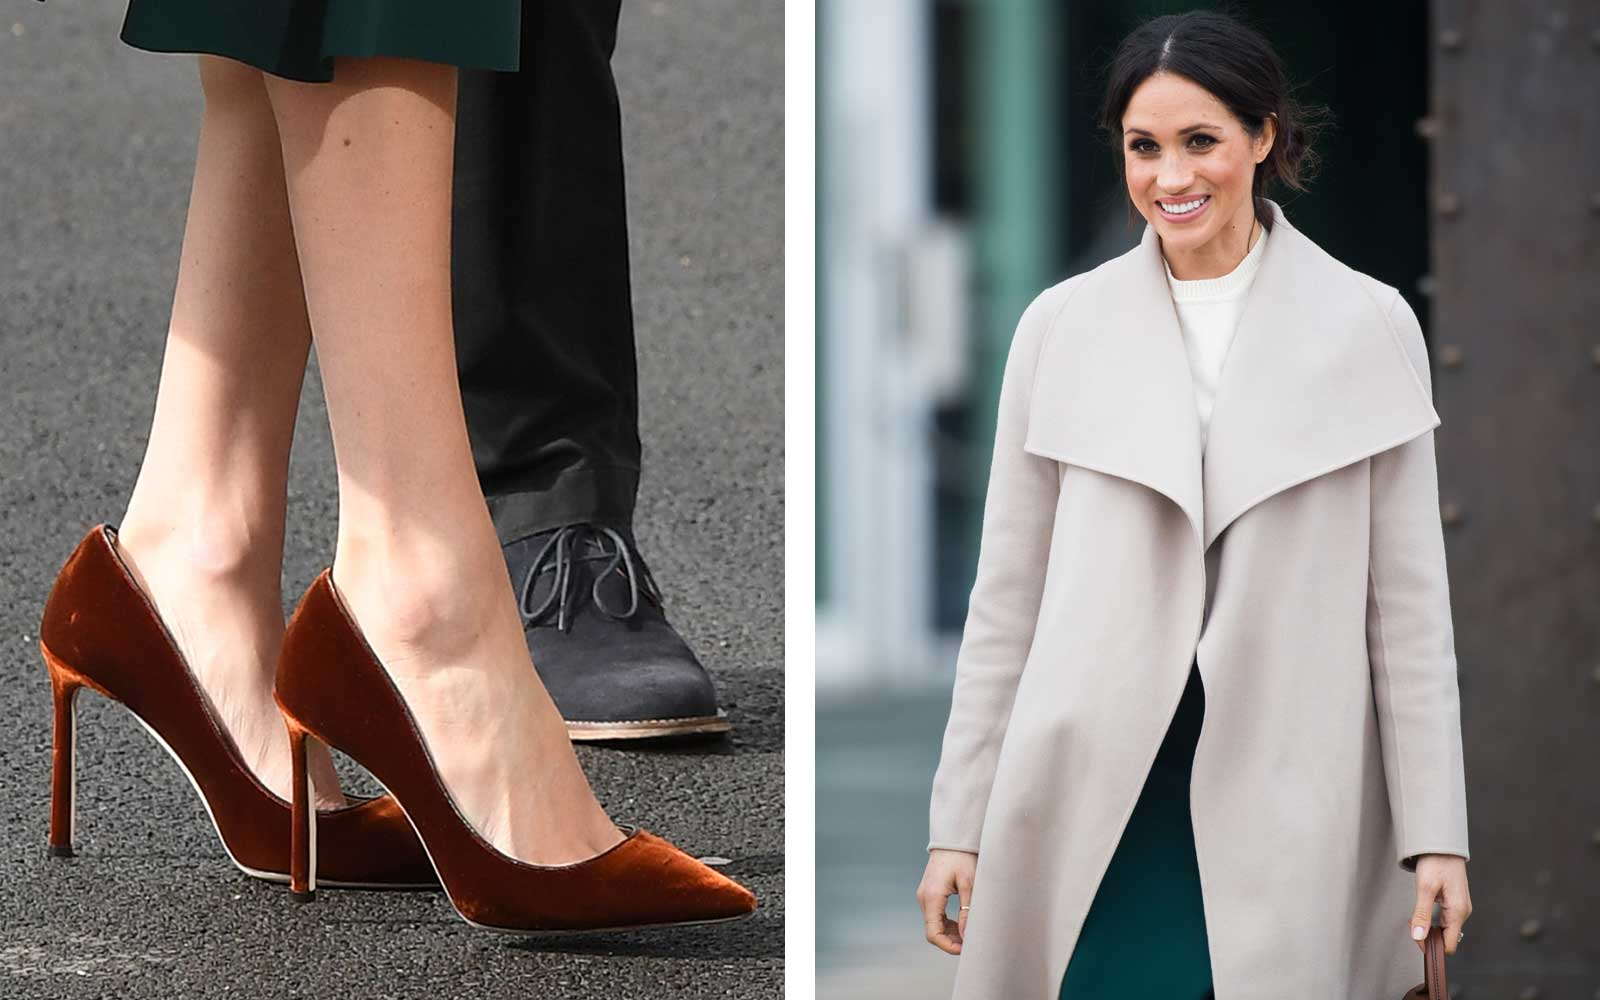 Meghan Markle and her shoes